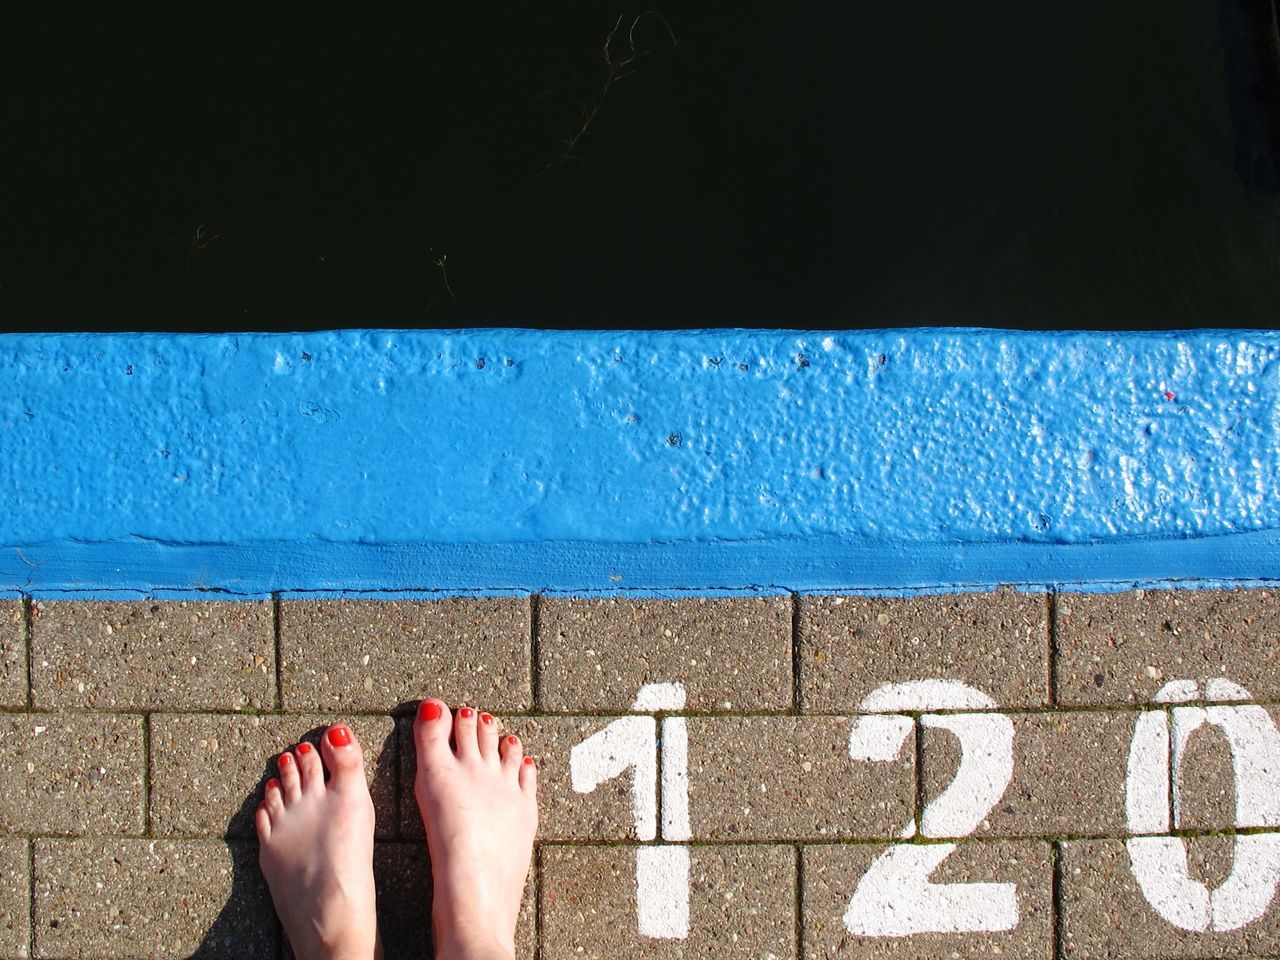 Not deep but dark Poolside Relaxation Summer Water Barefoot Swimming Pool Natural Pool Outdoor Pool Open Air Bath Floortraits Nail Varnish Marks A Bird's Eye View Digits Sign At The Edge Of Human Foot Dark Waters Seagrass Canon From My Point Of View Minimalism Minimalobsession Simplicity The Color Of Sport